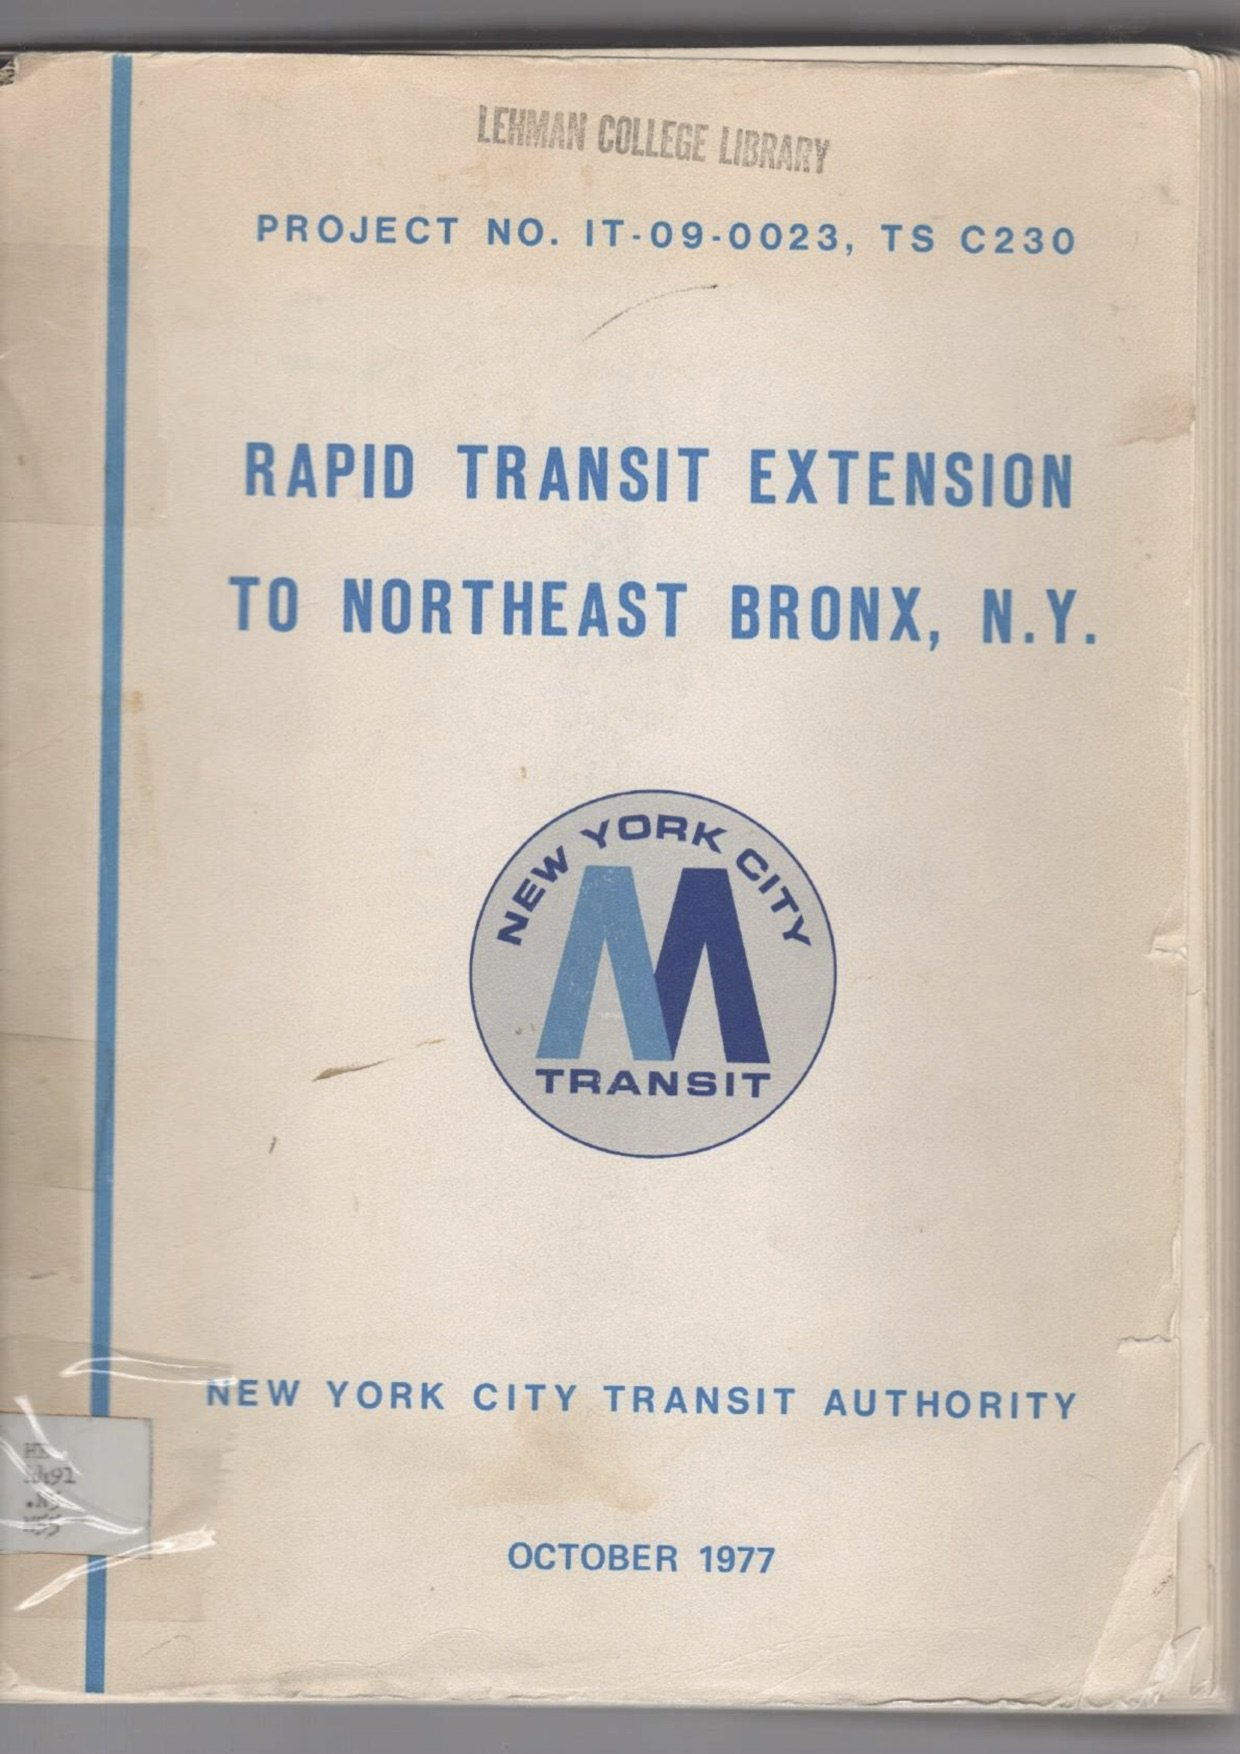 Rapid Transit Extension To Northeast Bronx, N.Y.  New York City Transit Authority October 1977